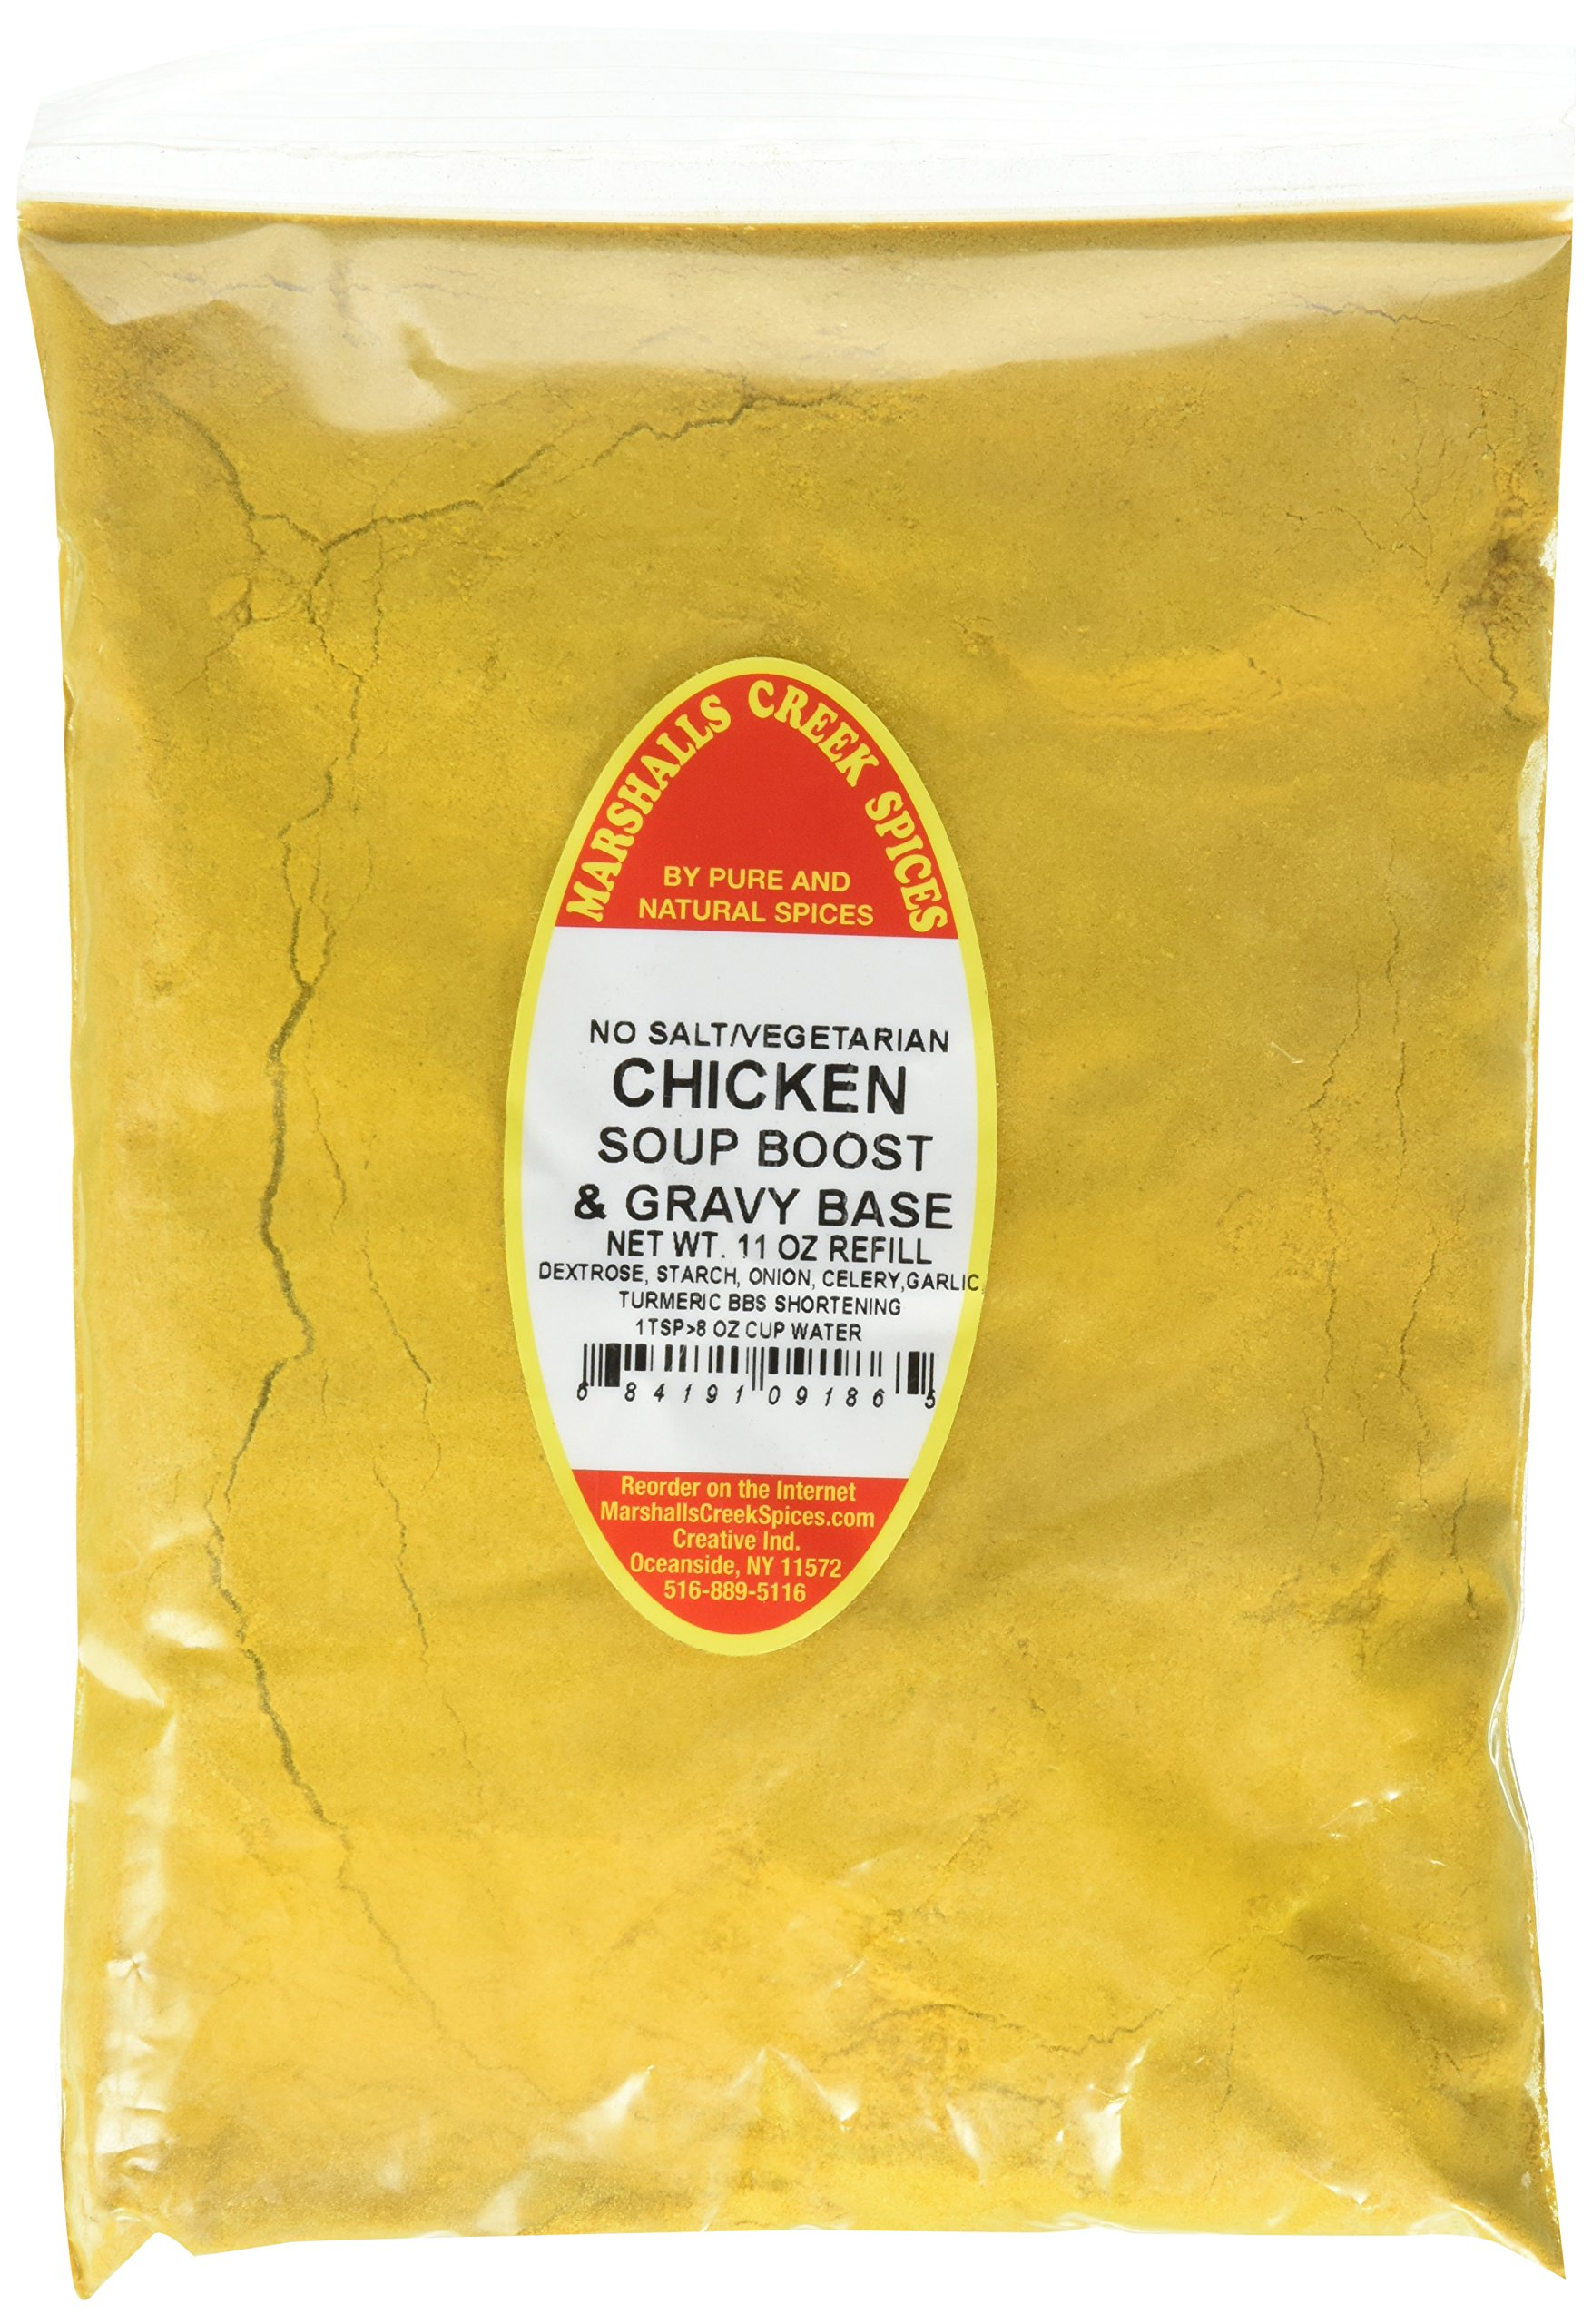 Marshalls Creek Spices Refill Pouch Soup Gravy Base and Chicken with No Salt Vegetarian Seasoning, 11 Ounce